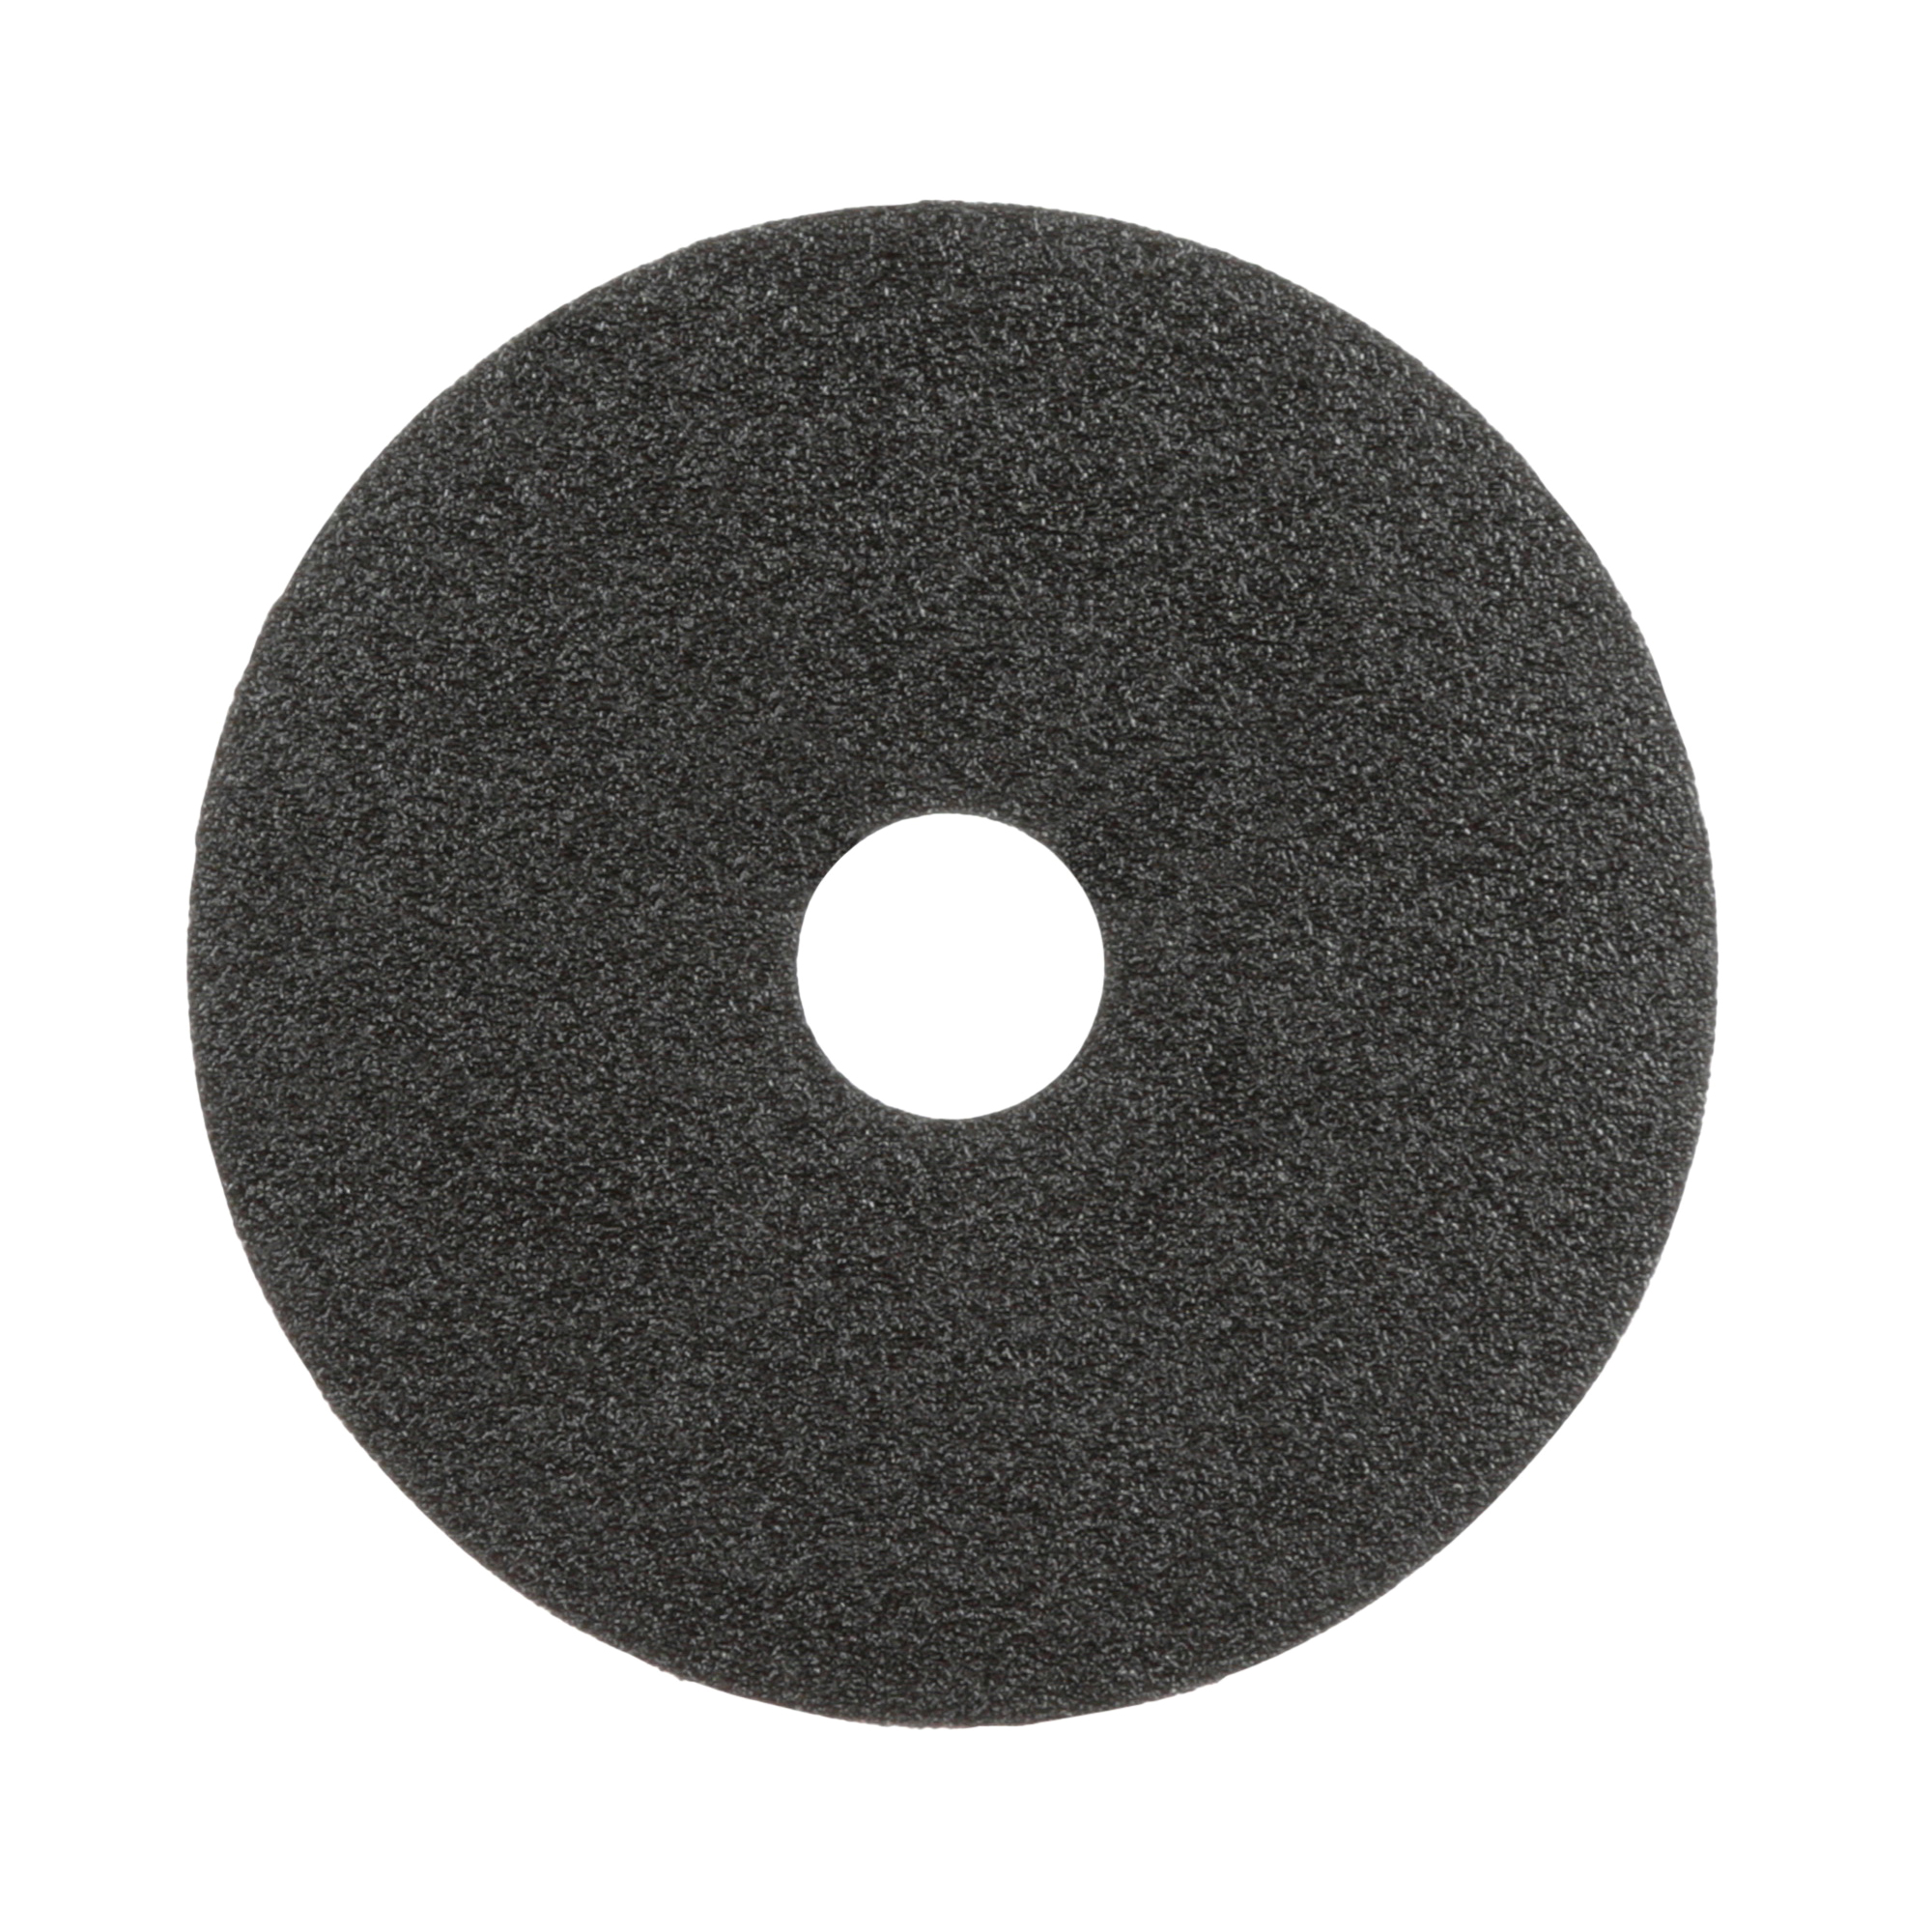 3M™ 051111-50417 501C Close Coated Closed Coated Abrasive Disc, 4-1/2 in Dia Disc, 7/8 in Center Hole, 100 Grit, Fine Grade, Zirconia Alumina Abrasive, Arbor Attachment